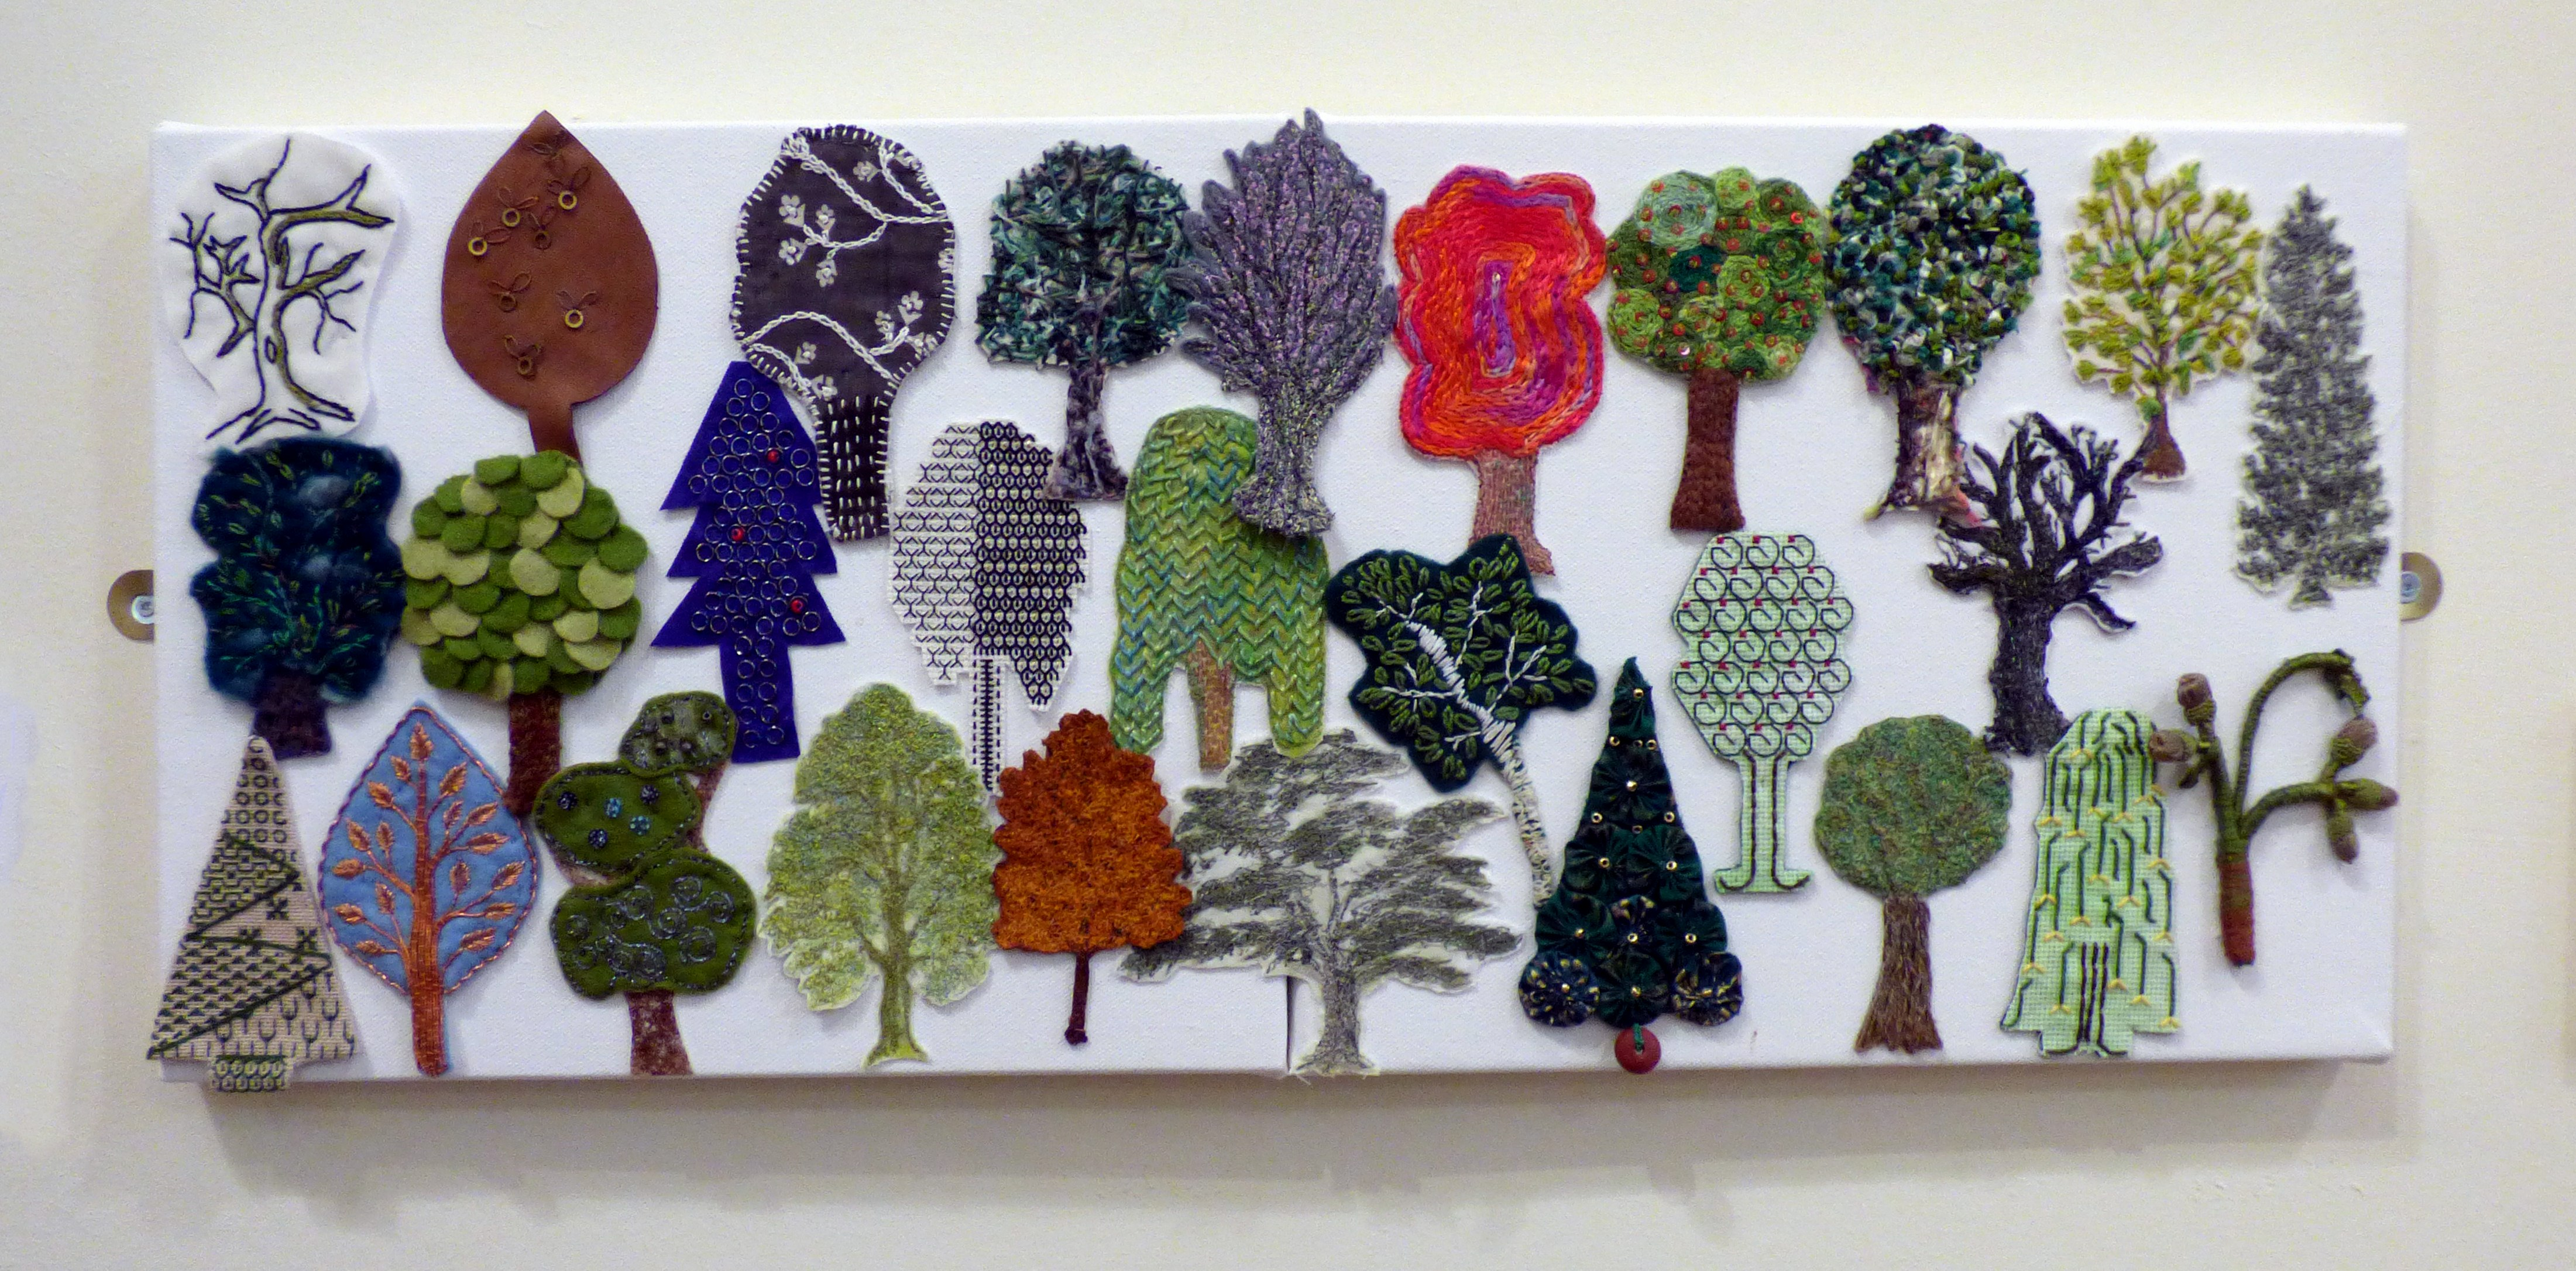 A SYLVAN EXTRAVAGANZA, Group Project by Chesterfield EG, 28 embroidered trees